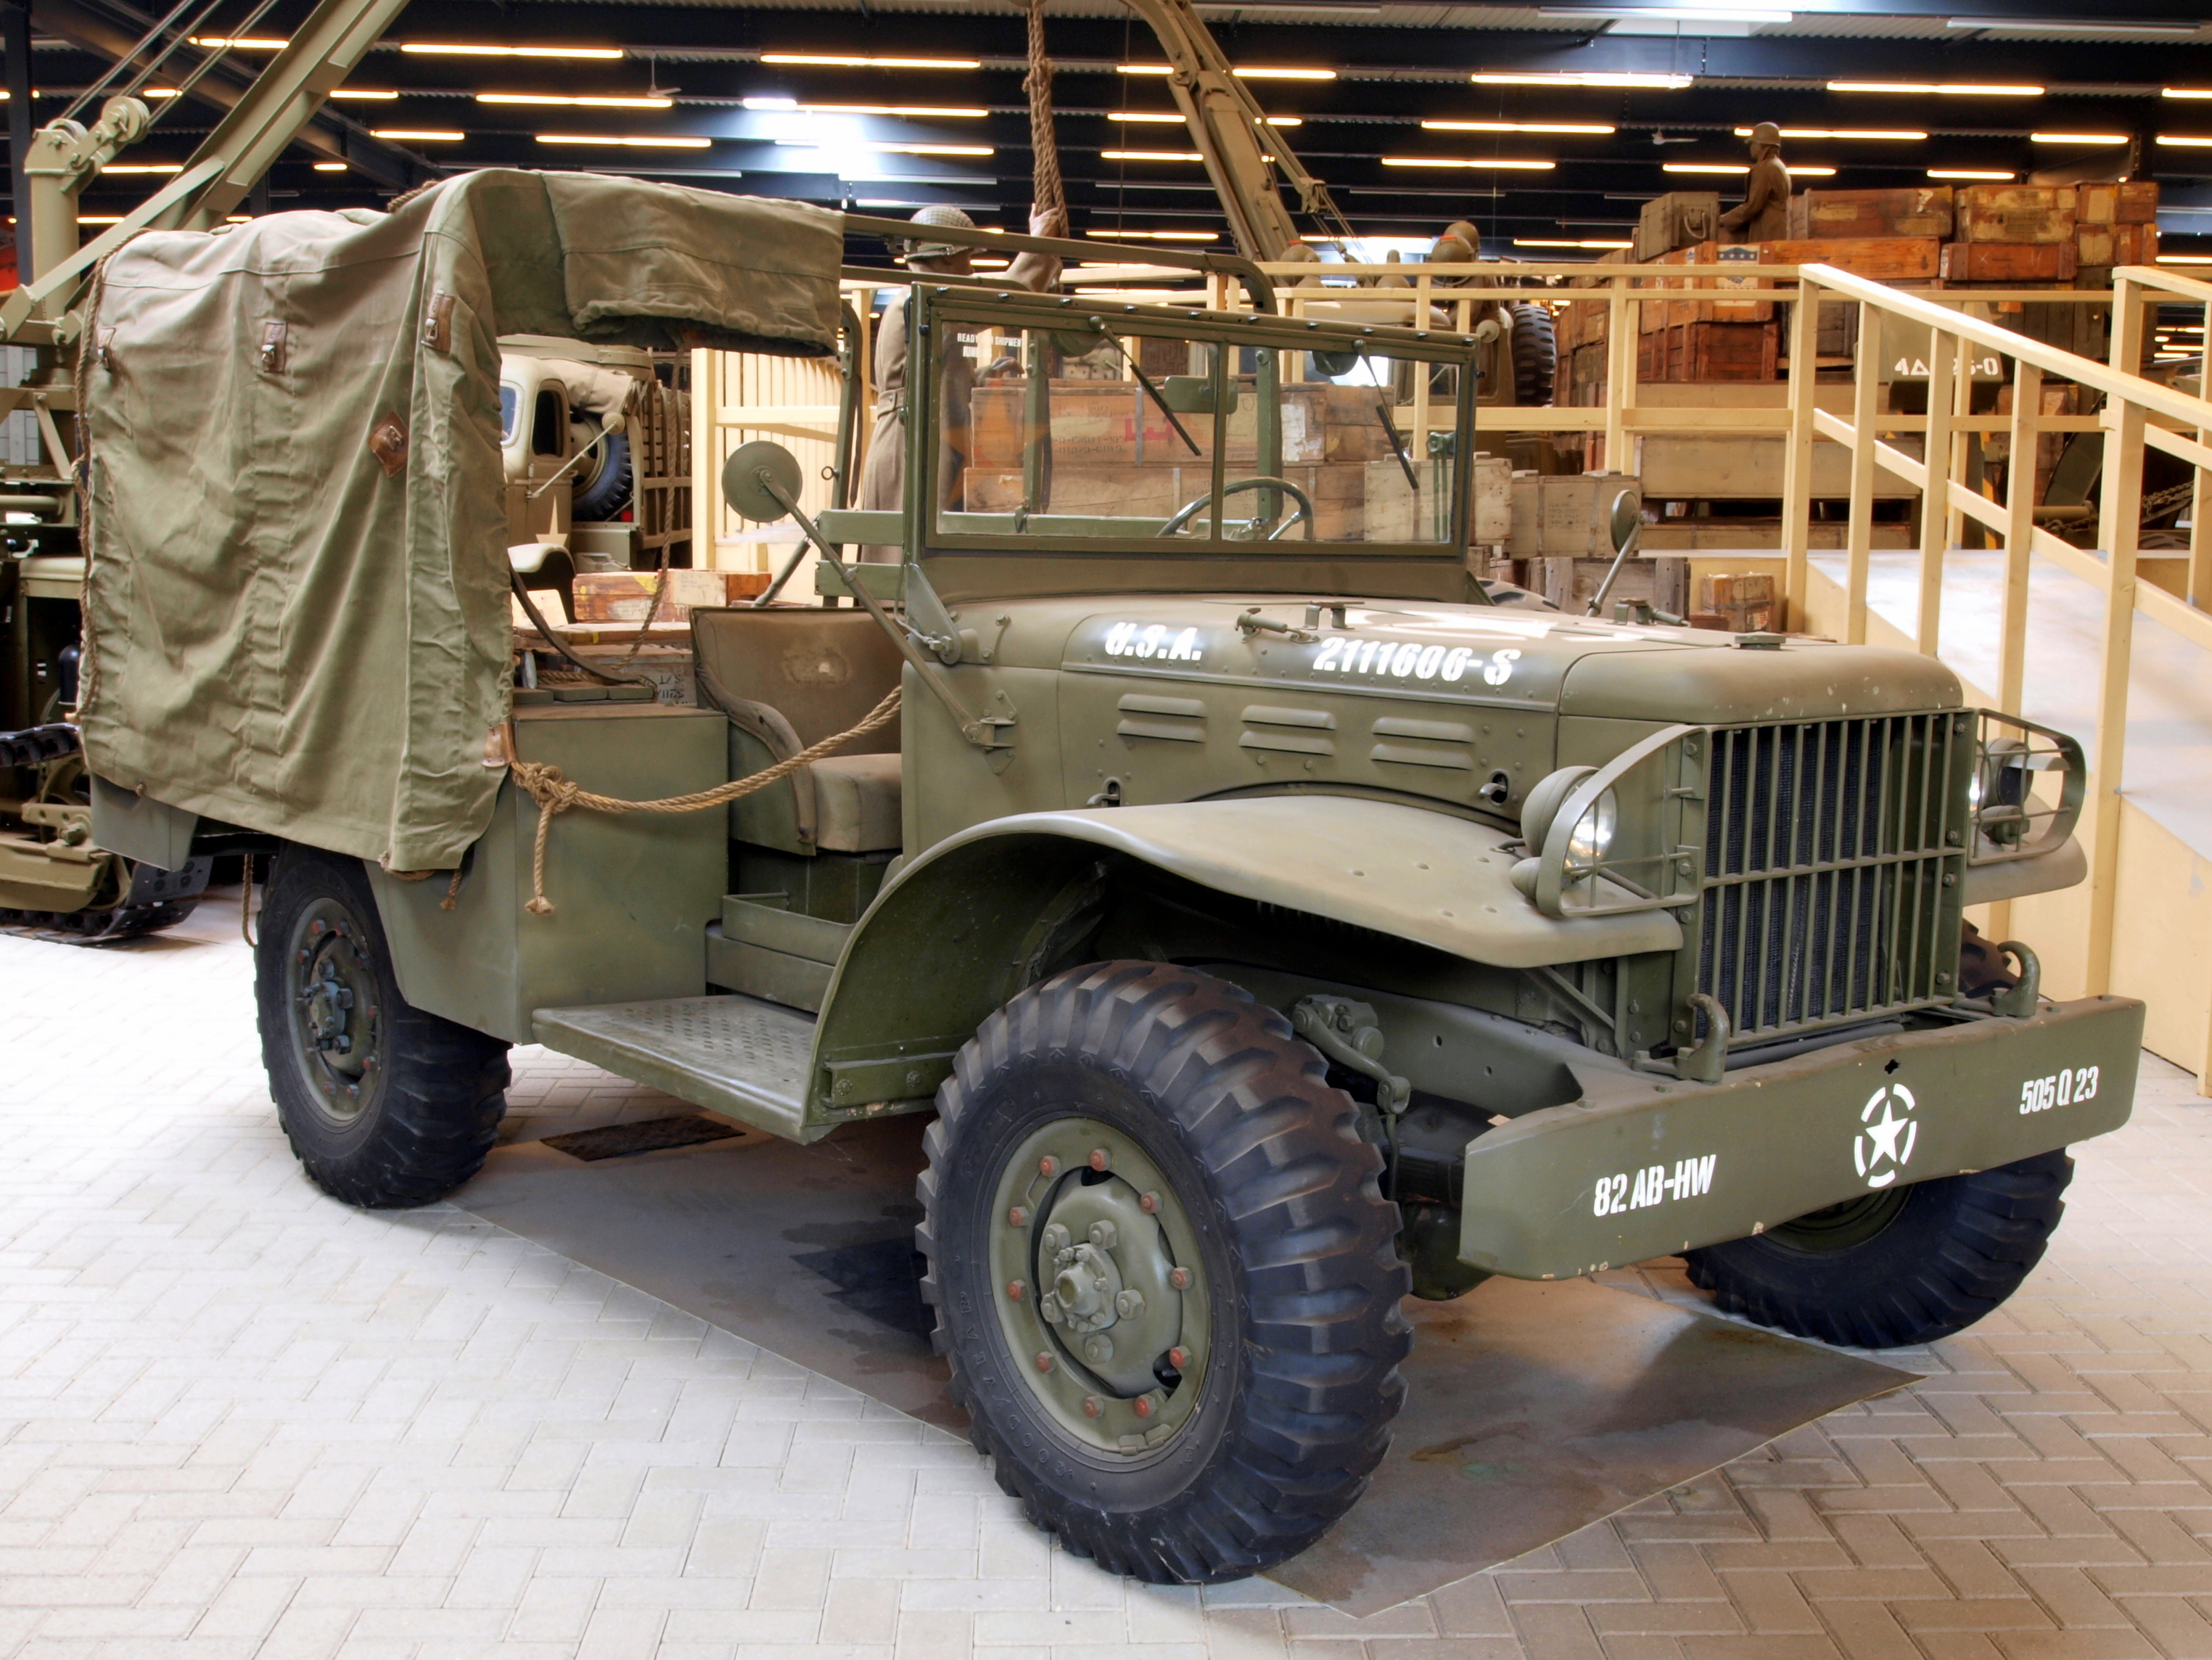 FileG502 4×4 Dodge WC51 Weapons Carrier, pic2JPG